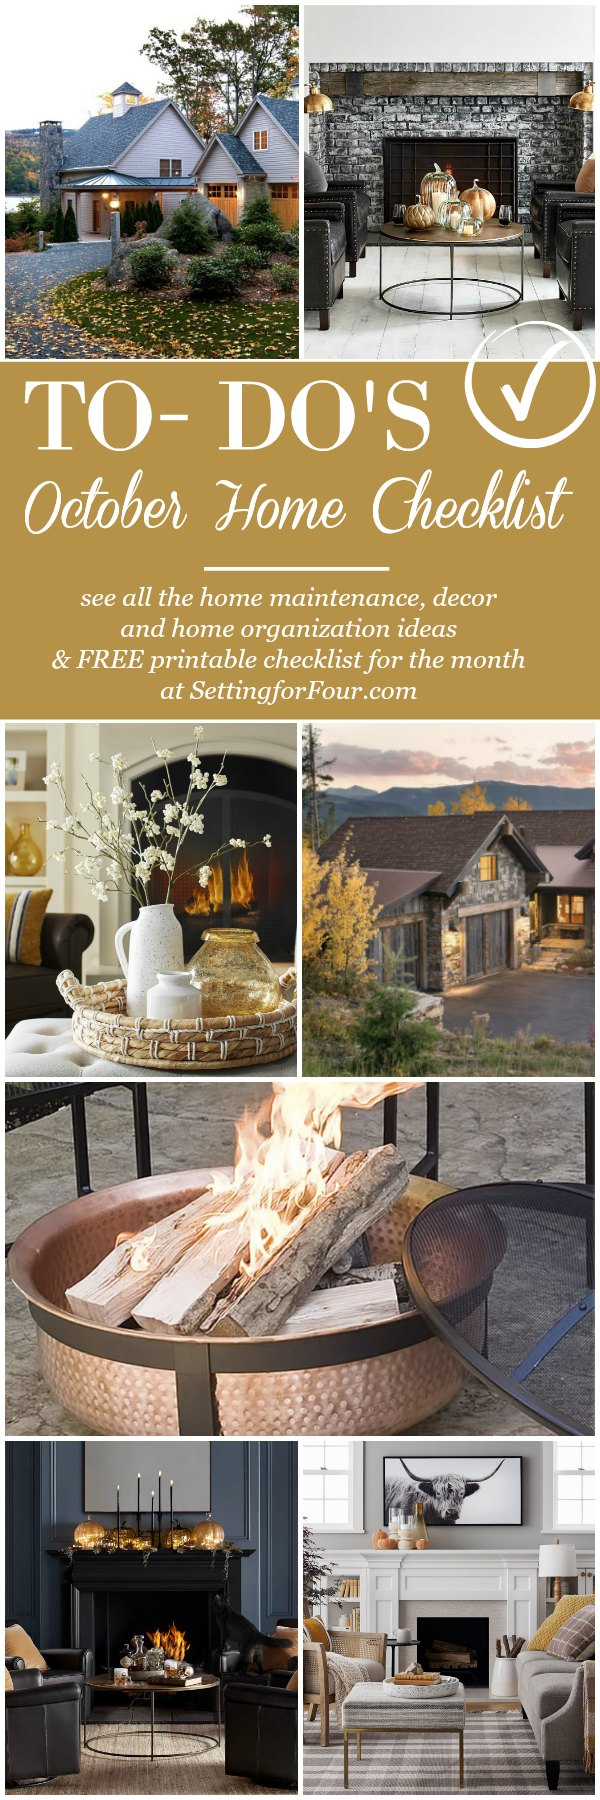 FREE October Home Checklist - Home Improvement & Fall Home Ideas #fall #home #checklist #maintenance #renovations #decor